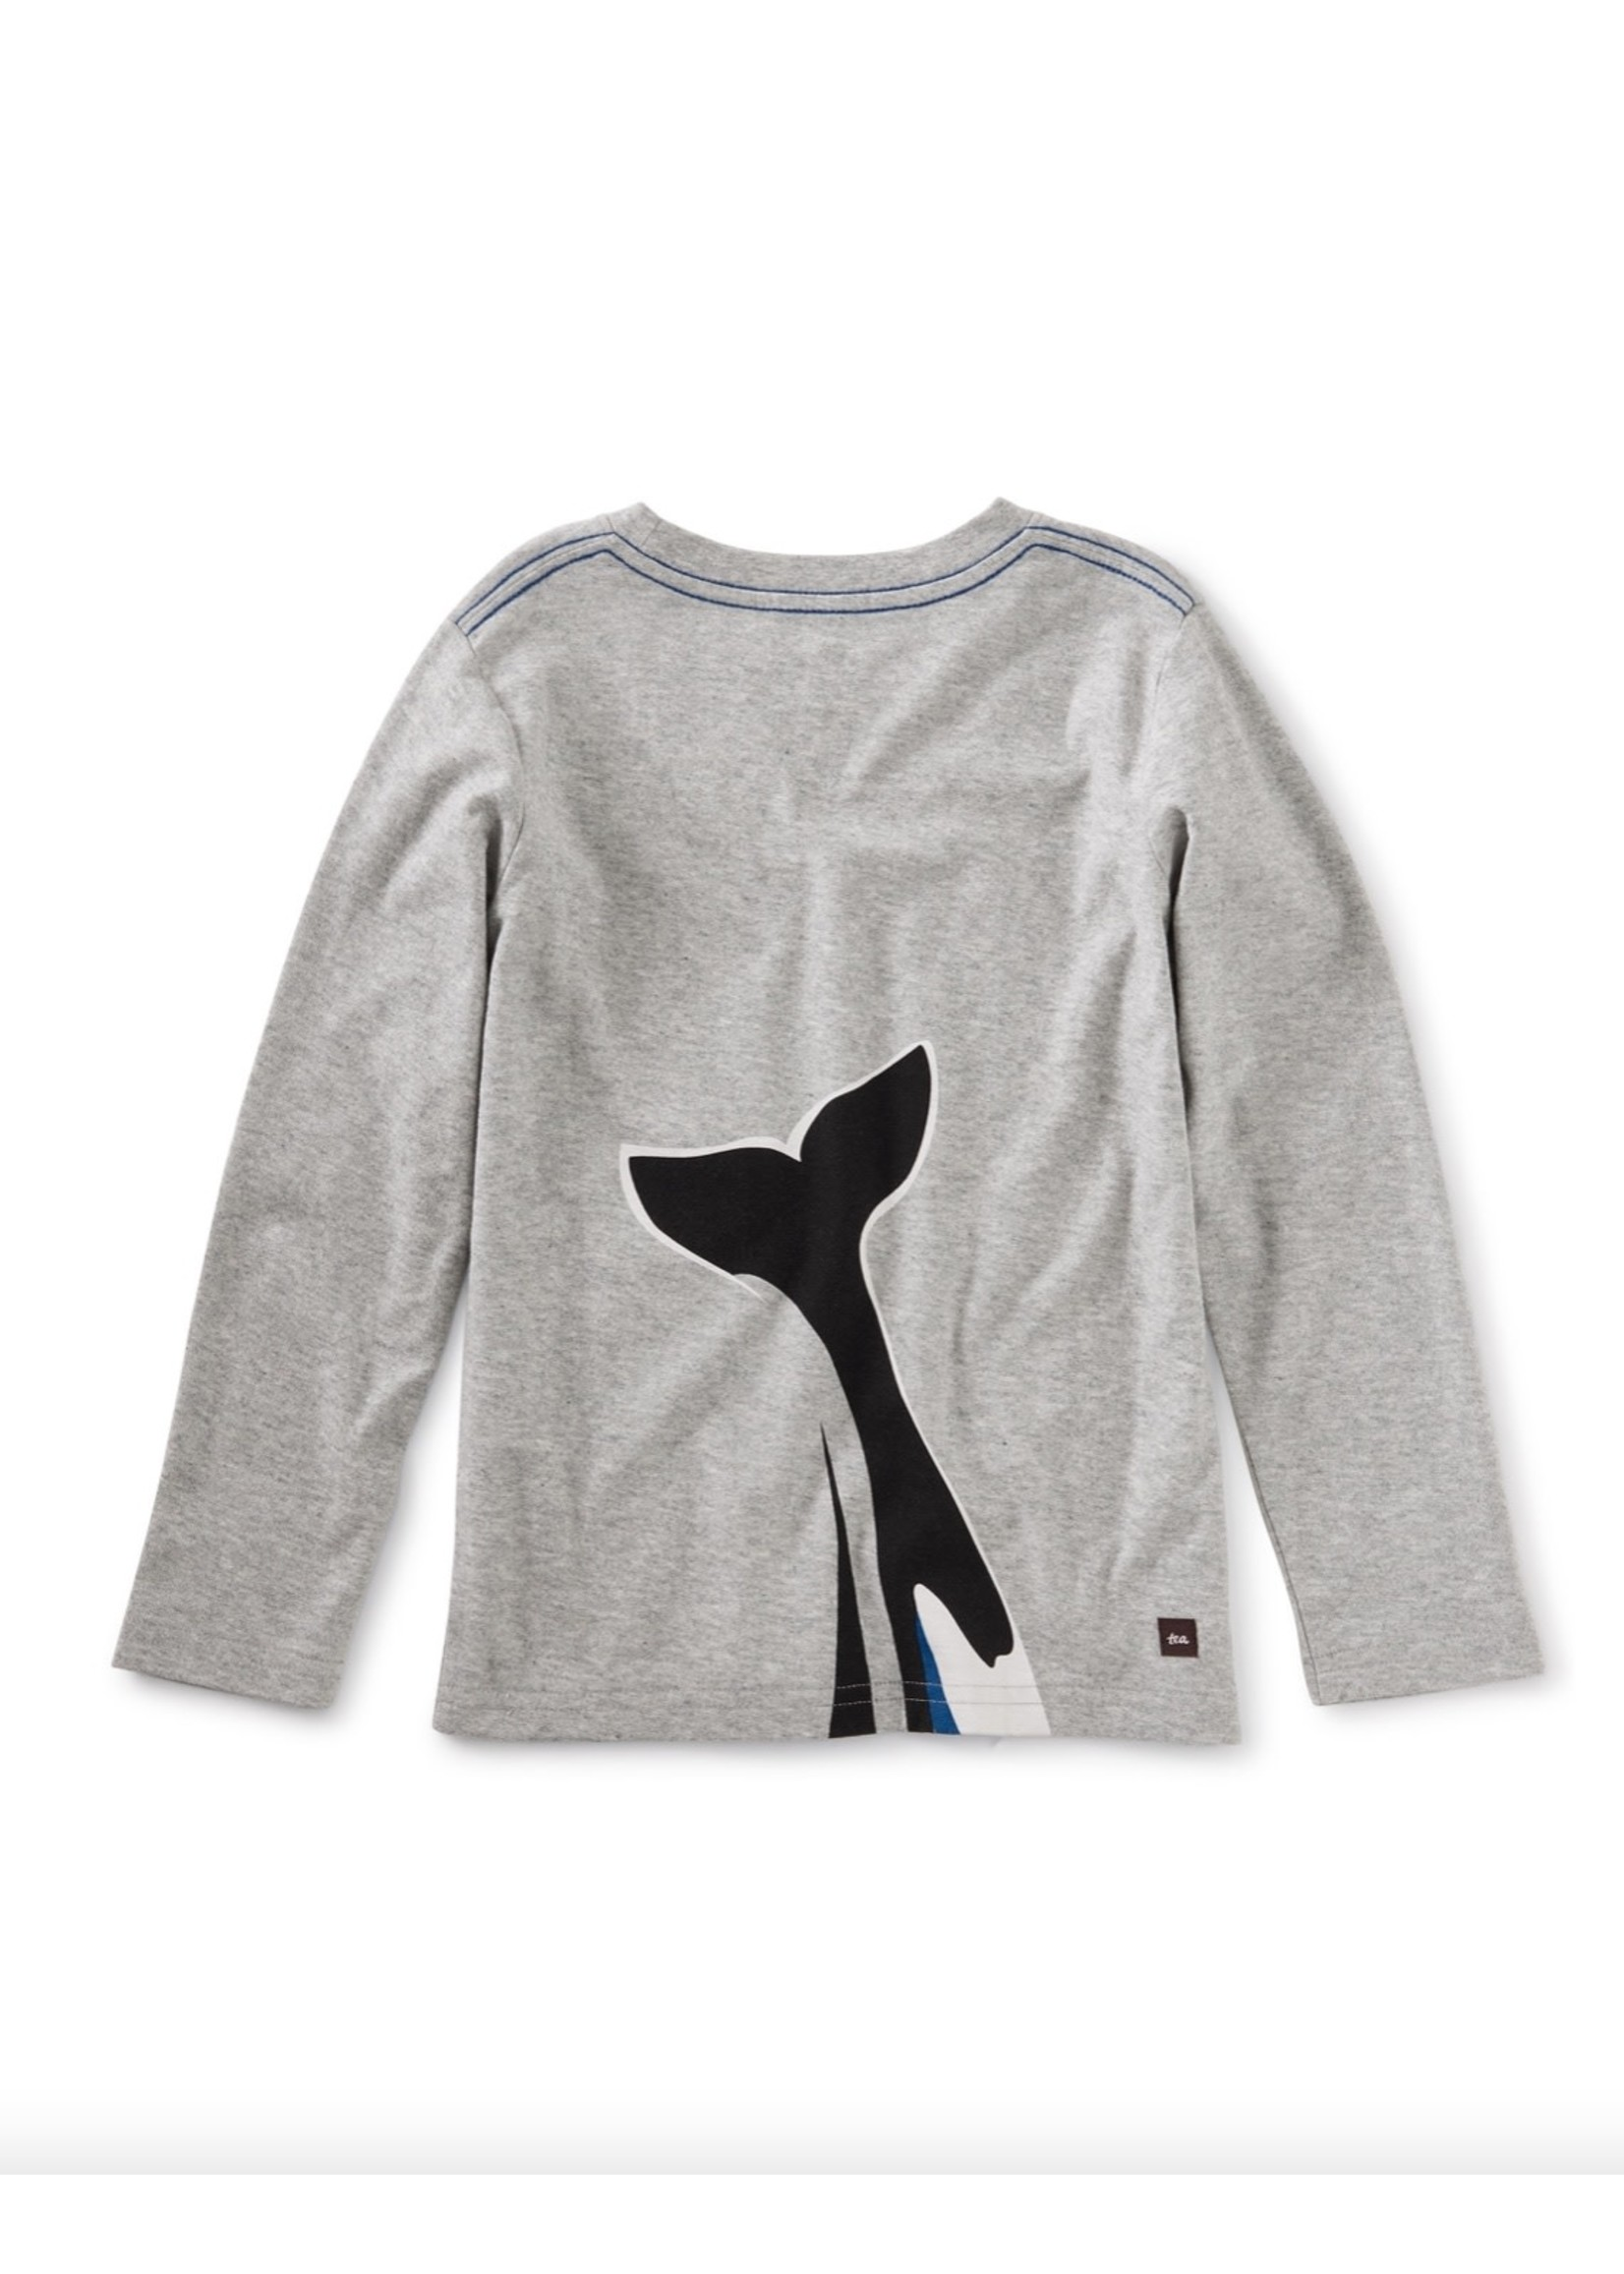 Tea Collection Tails of the Sea Graphic Tee in Med Heather Grey